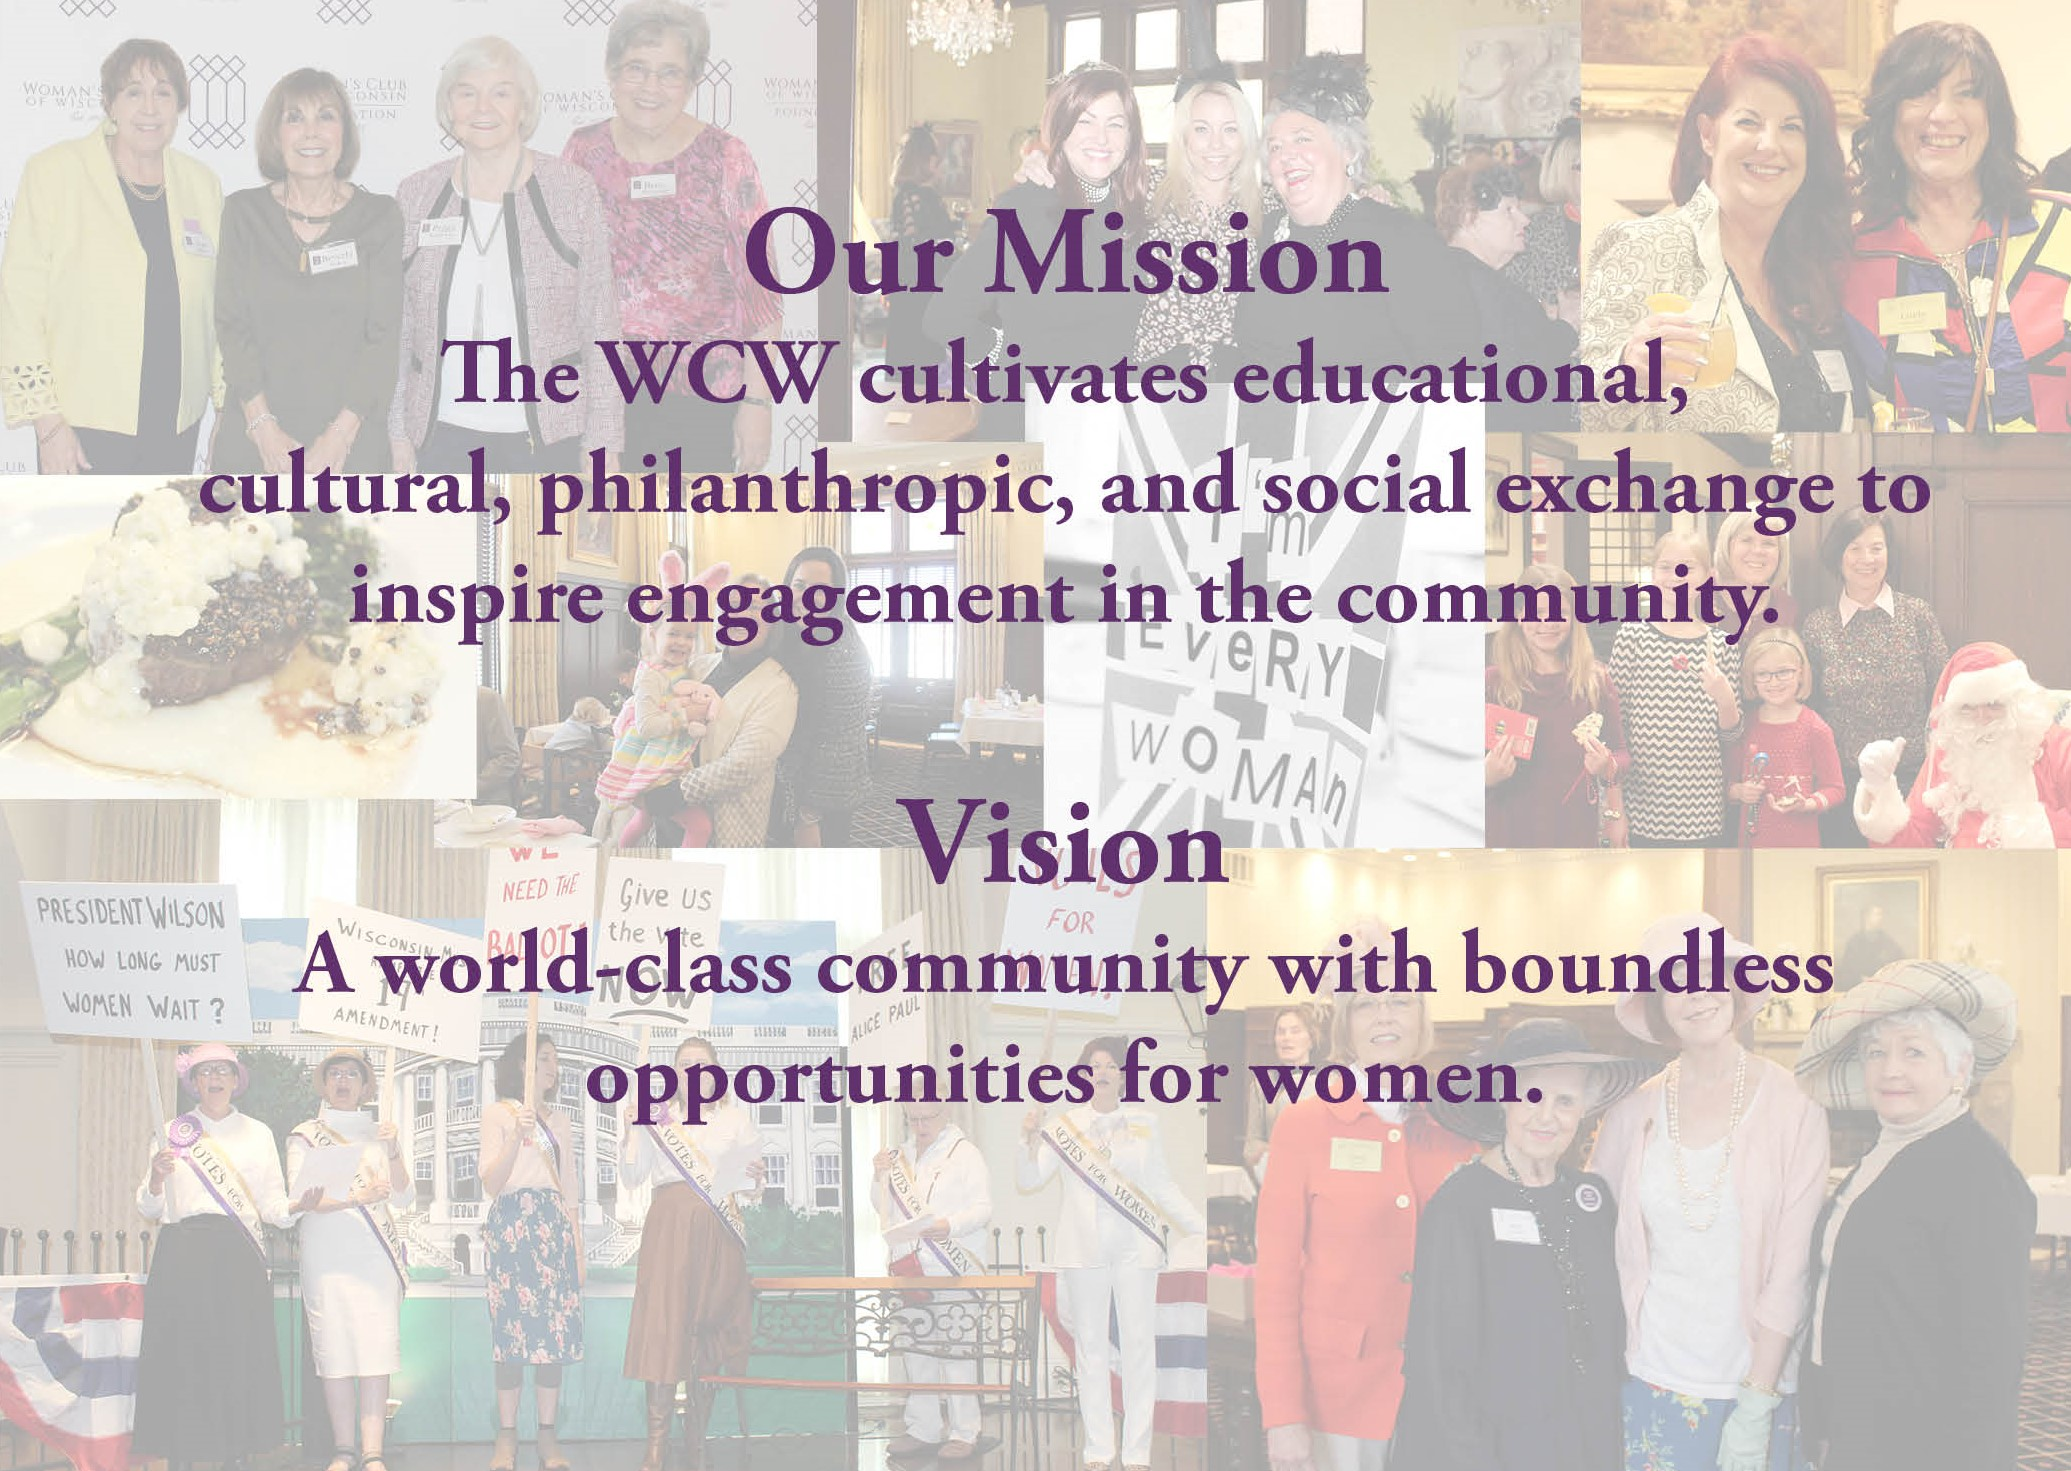 Woman's Club of Wisconsin photo collage and mission statement